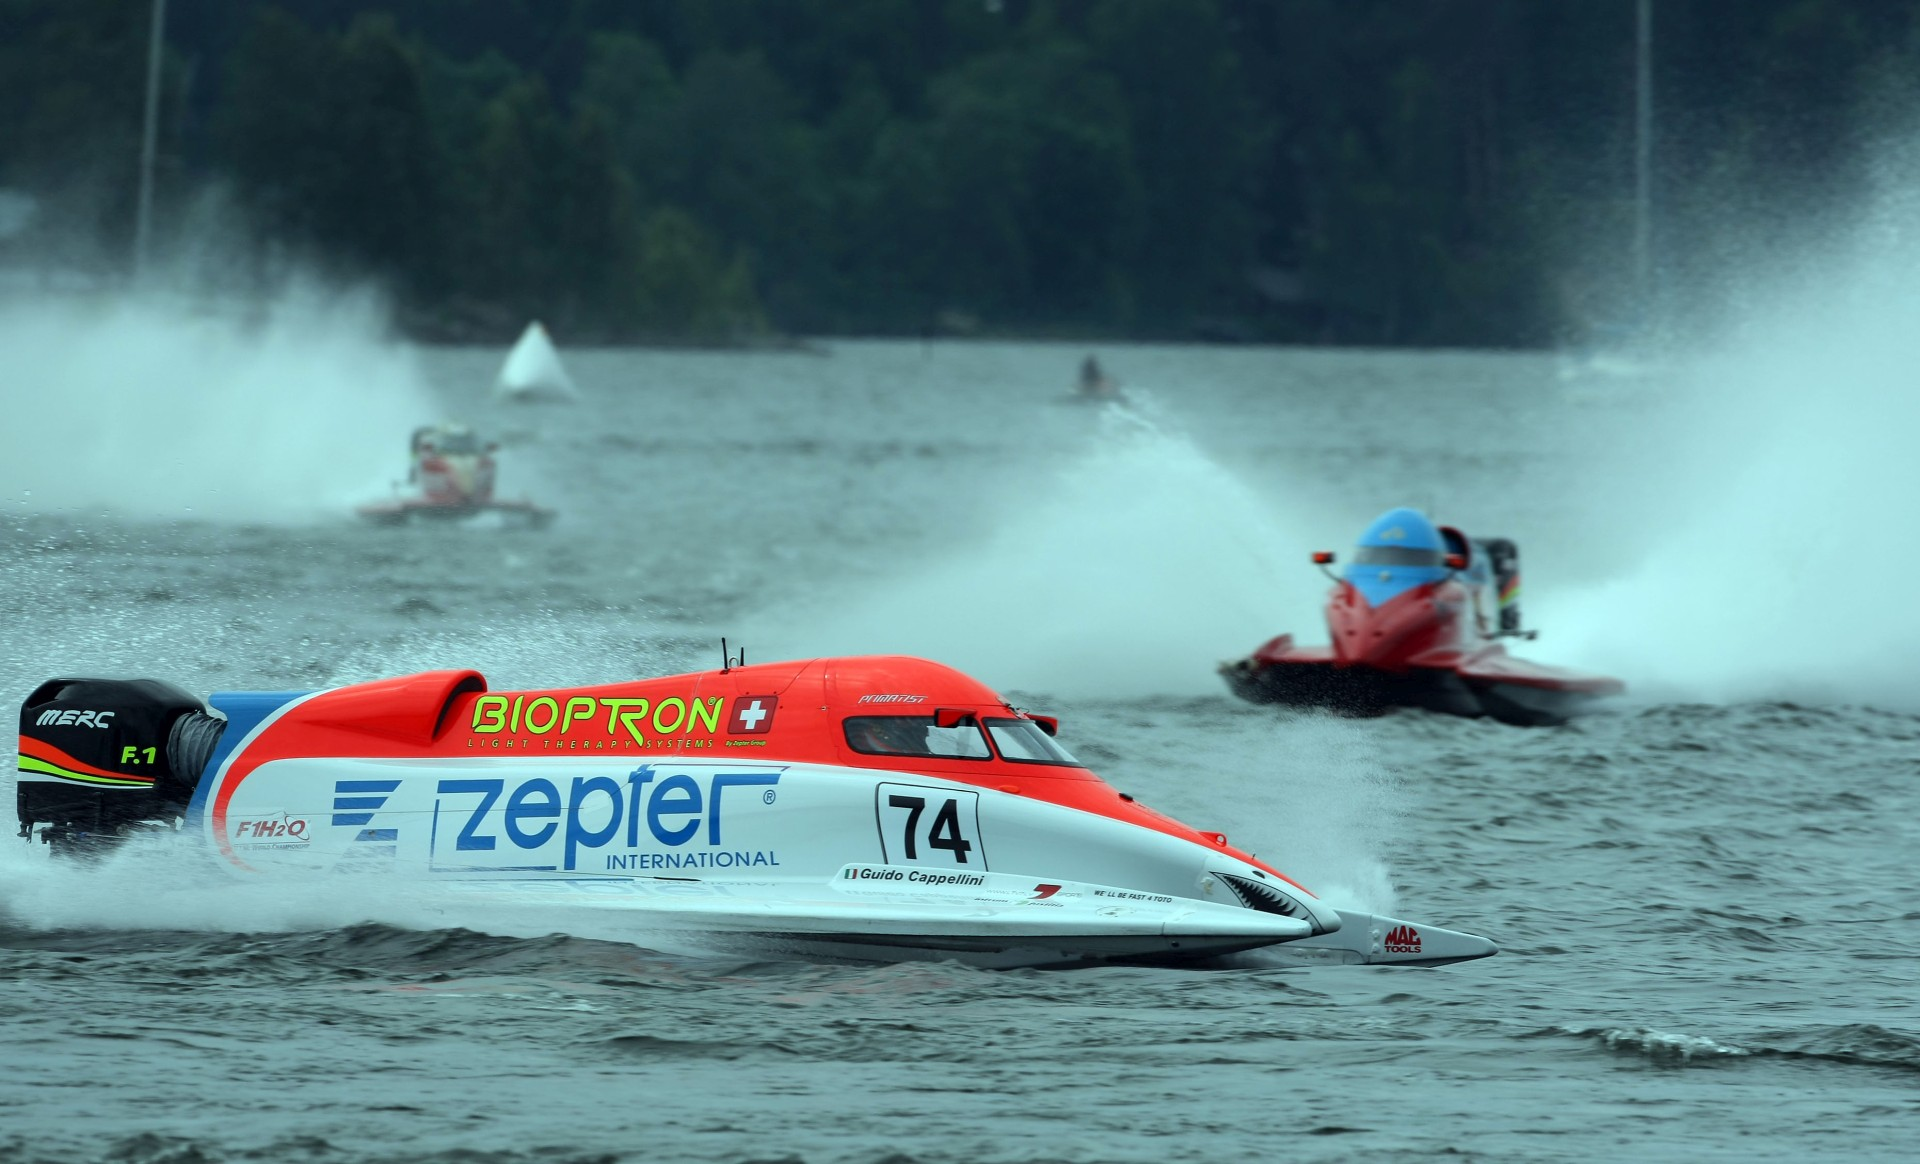 120609-LAHTI-PL-Guido Cappellini of Italy of the Zepter Team in action during the 1st race of the UIM F1 Powerboat Grand Prix of Finland, on Lake Vesijarvi, Lahti, Finland. Picture by Paul Lakatos/Idea Marketing.